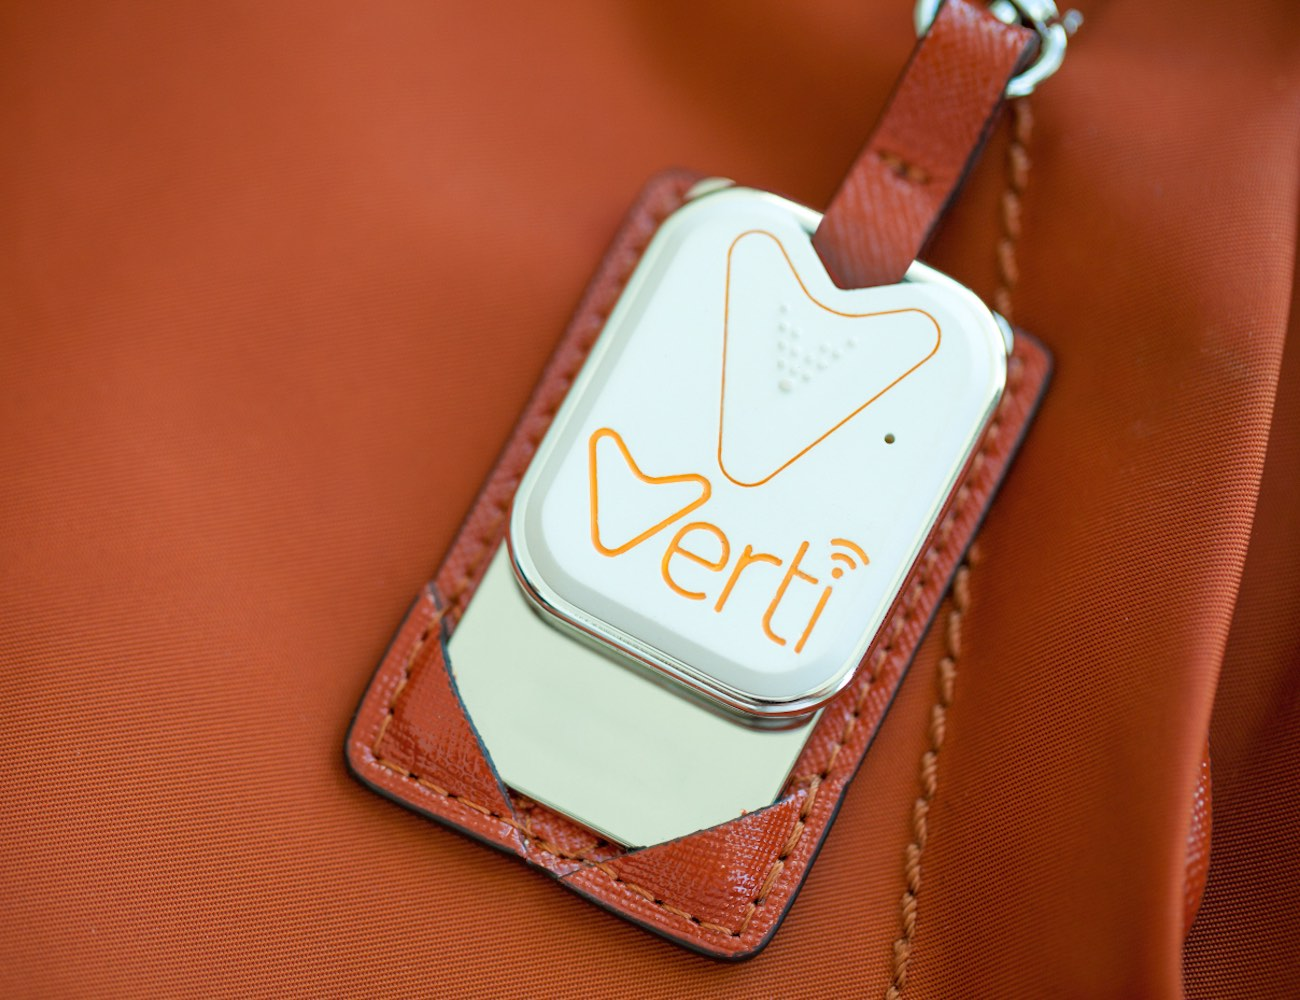 Verti – The Multi-Use Bluetooth Tracker